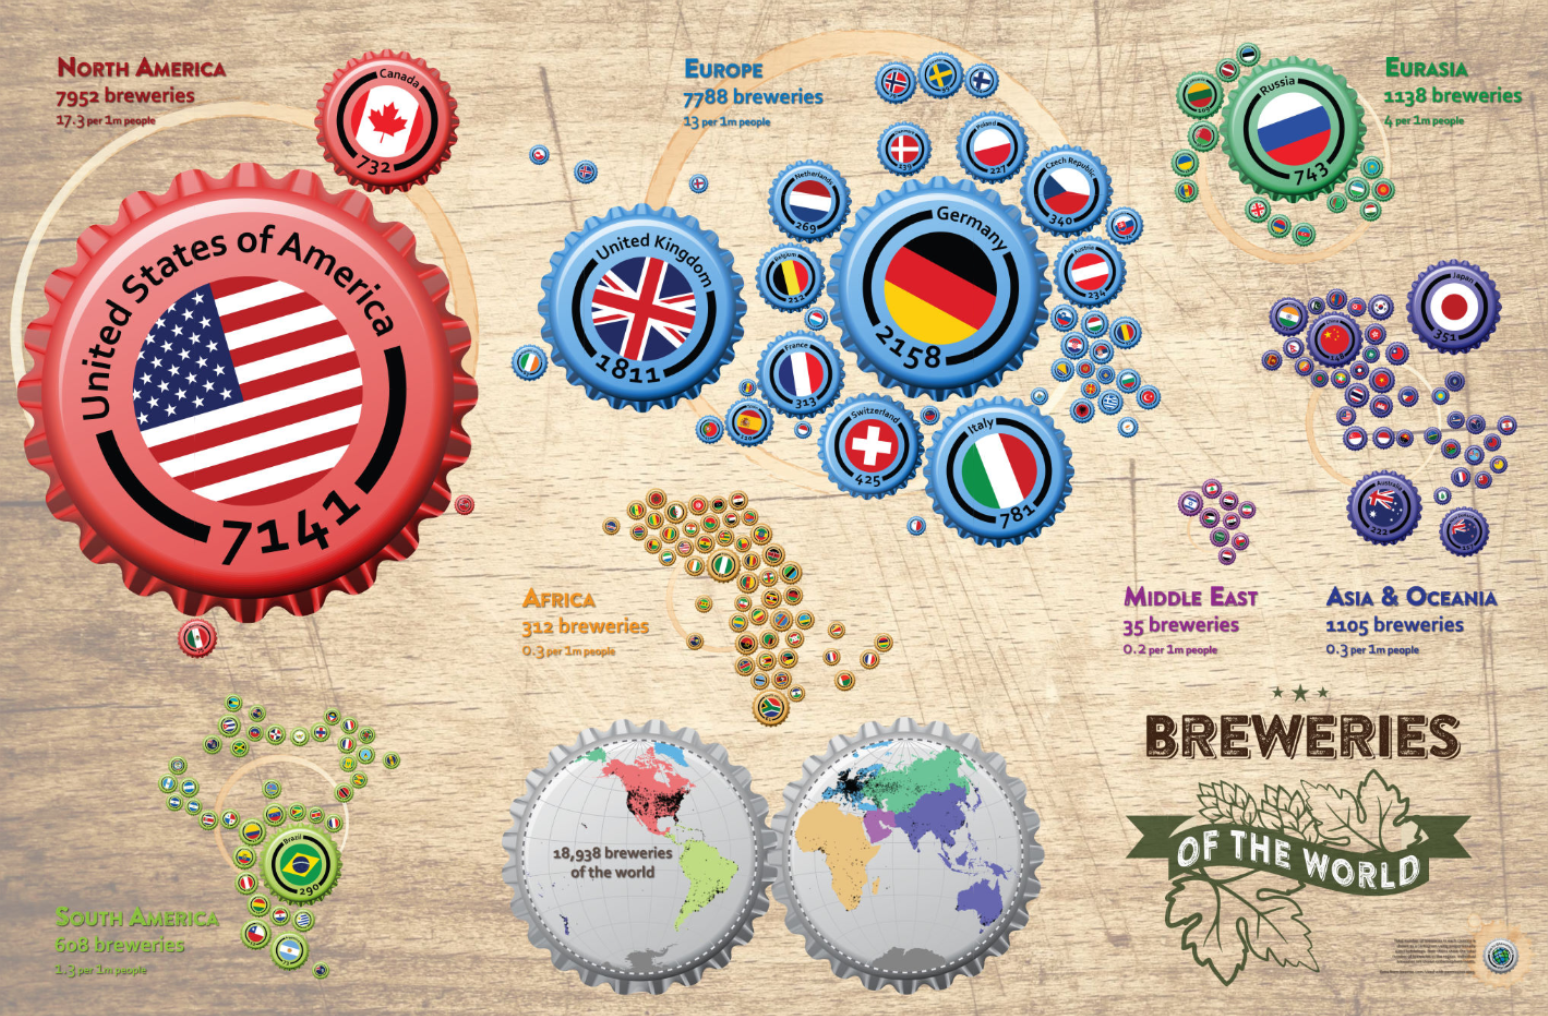 Breweries of the World